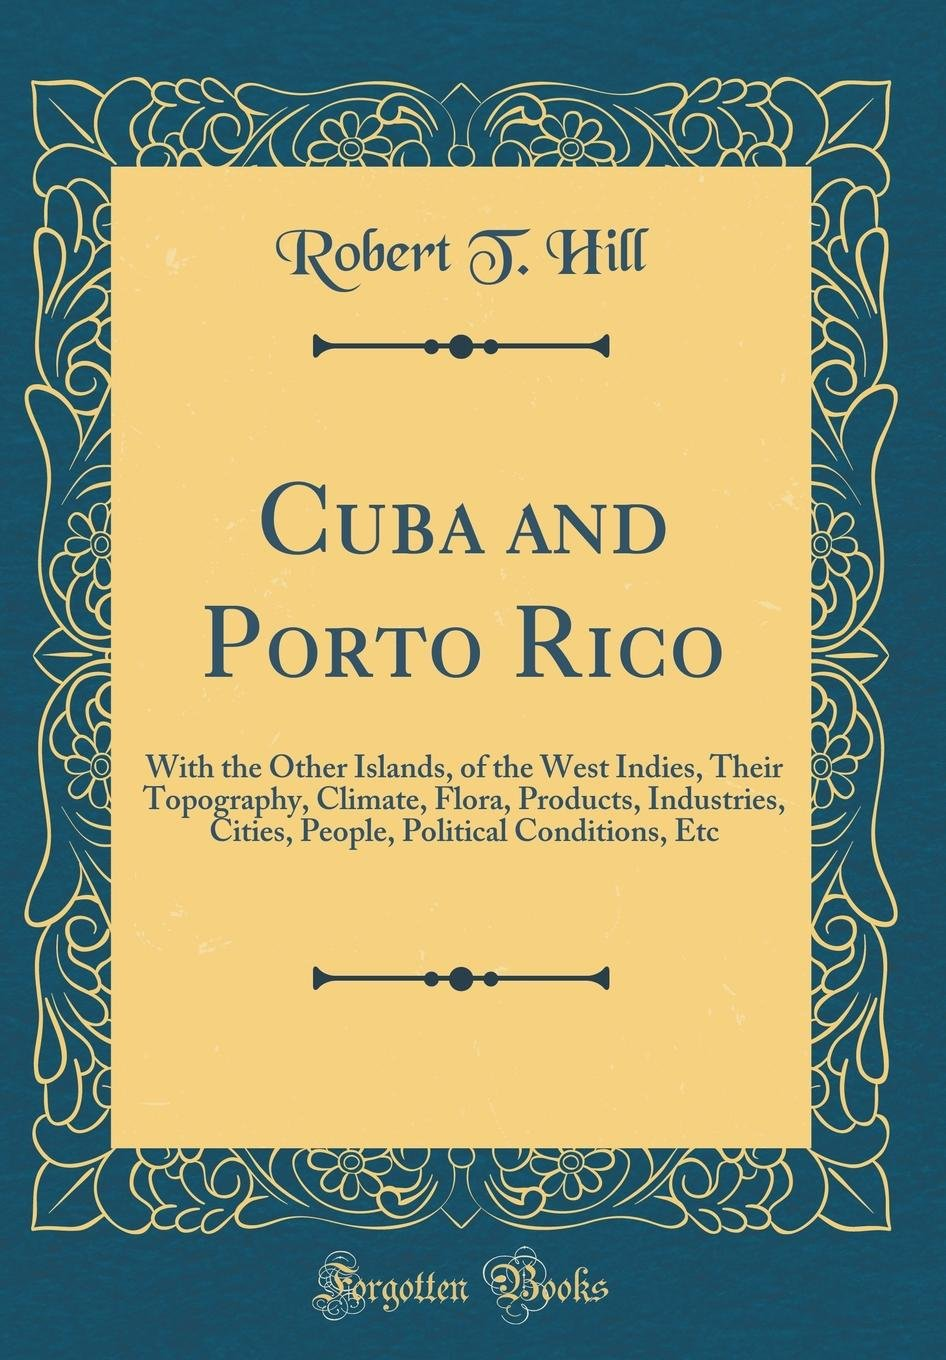 Read Online Cuba and Porto Rico: With the Other Islands, of the West Indies, Their Topography, Climate, Flora, Products, Industries, Cities, People, Political Conditions, Etc (Classic Reprint) PDF